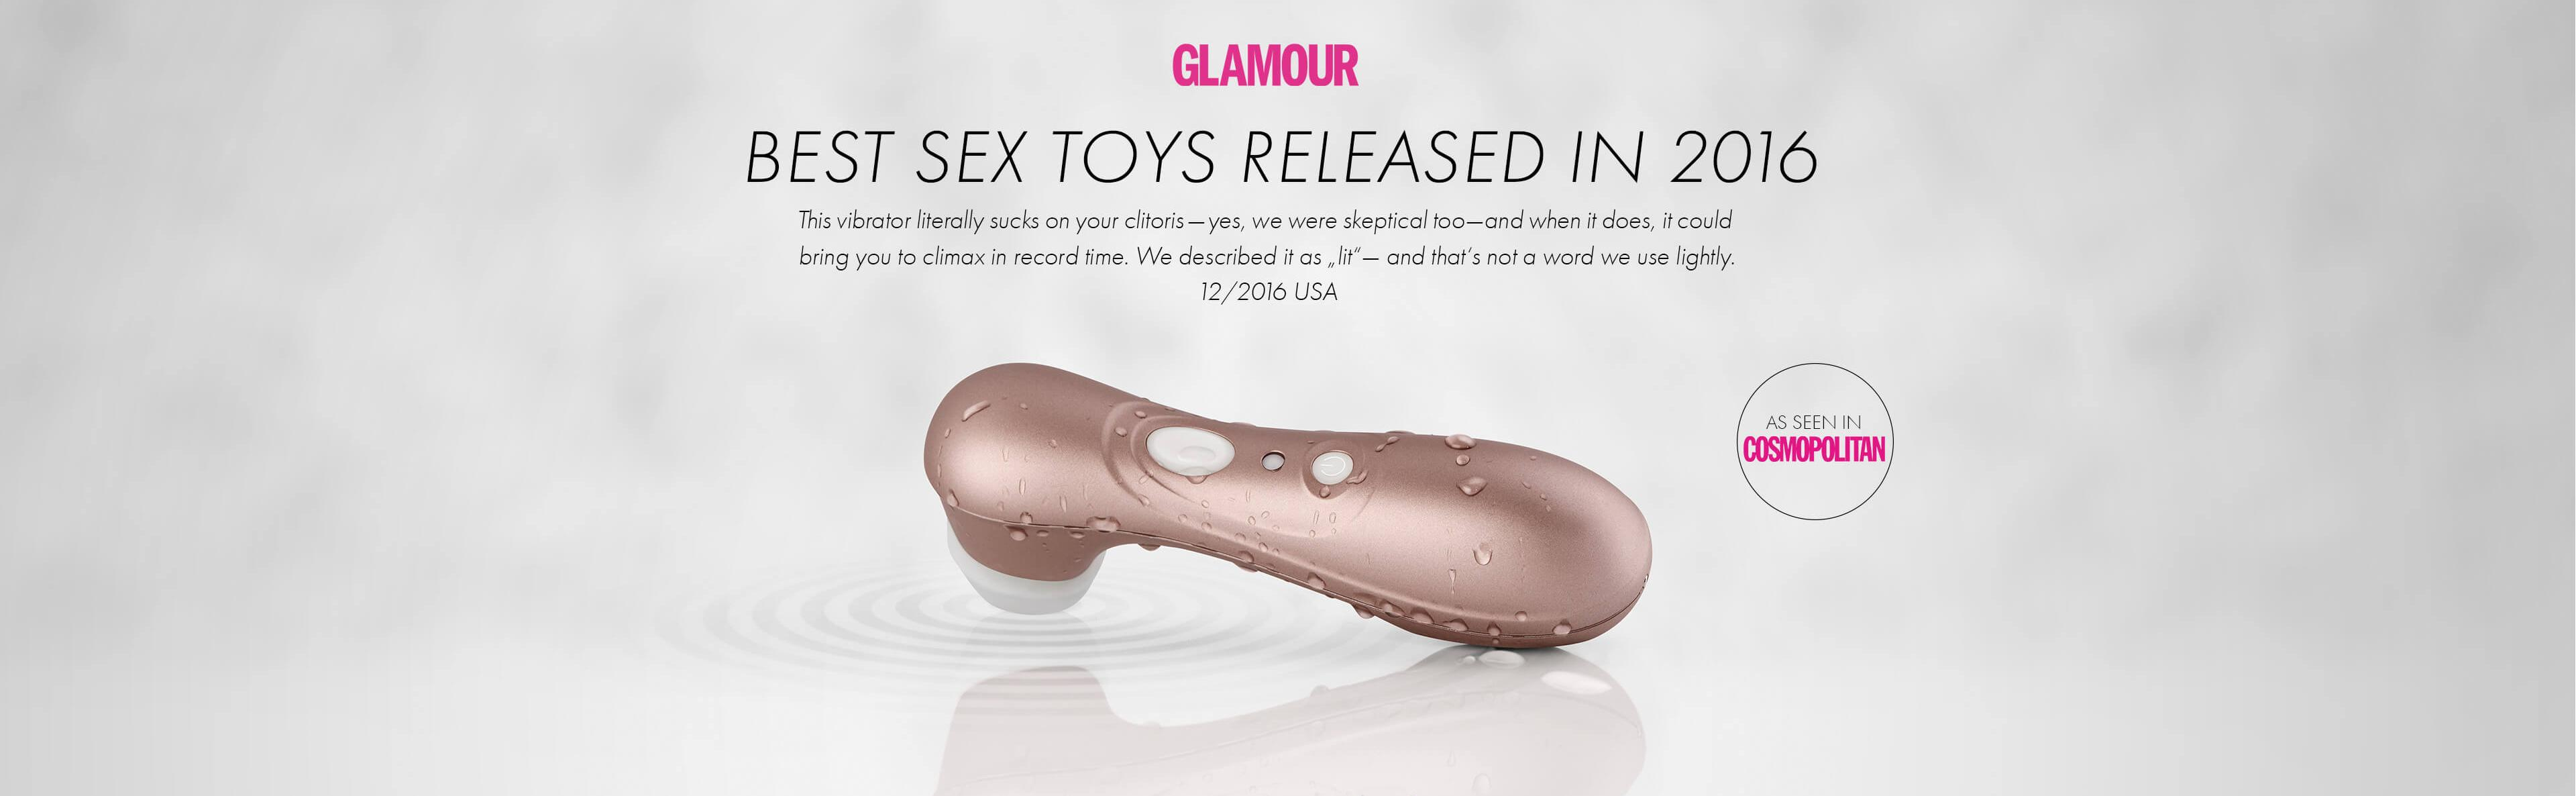 Sex toys 4 my pc